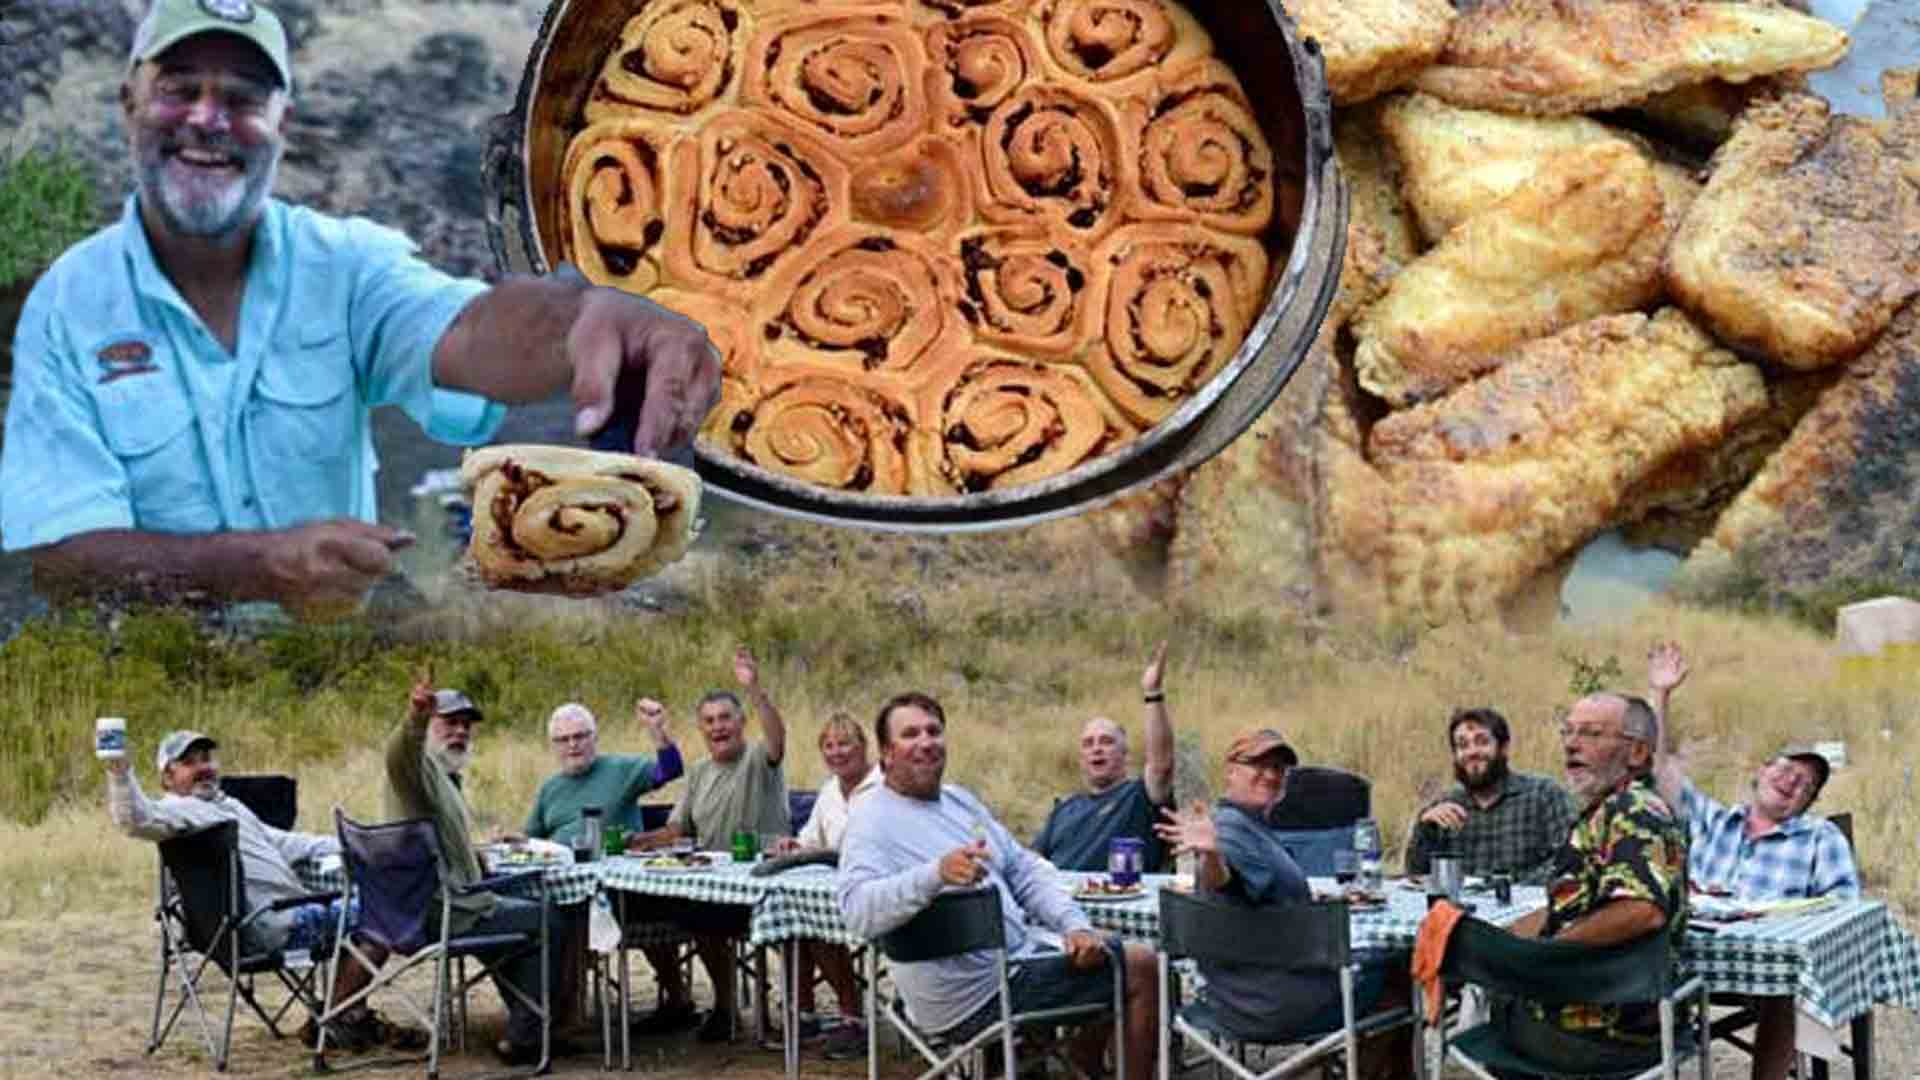 Group around the table and Cinnamon Rolls